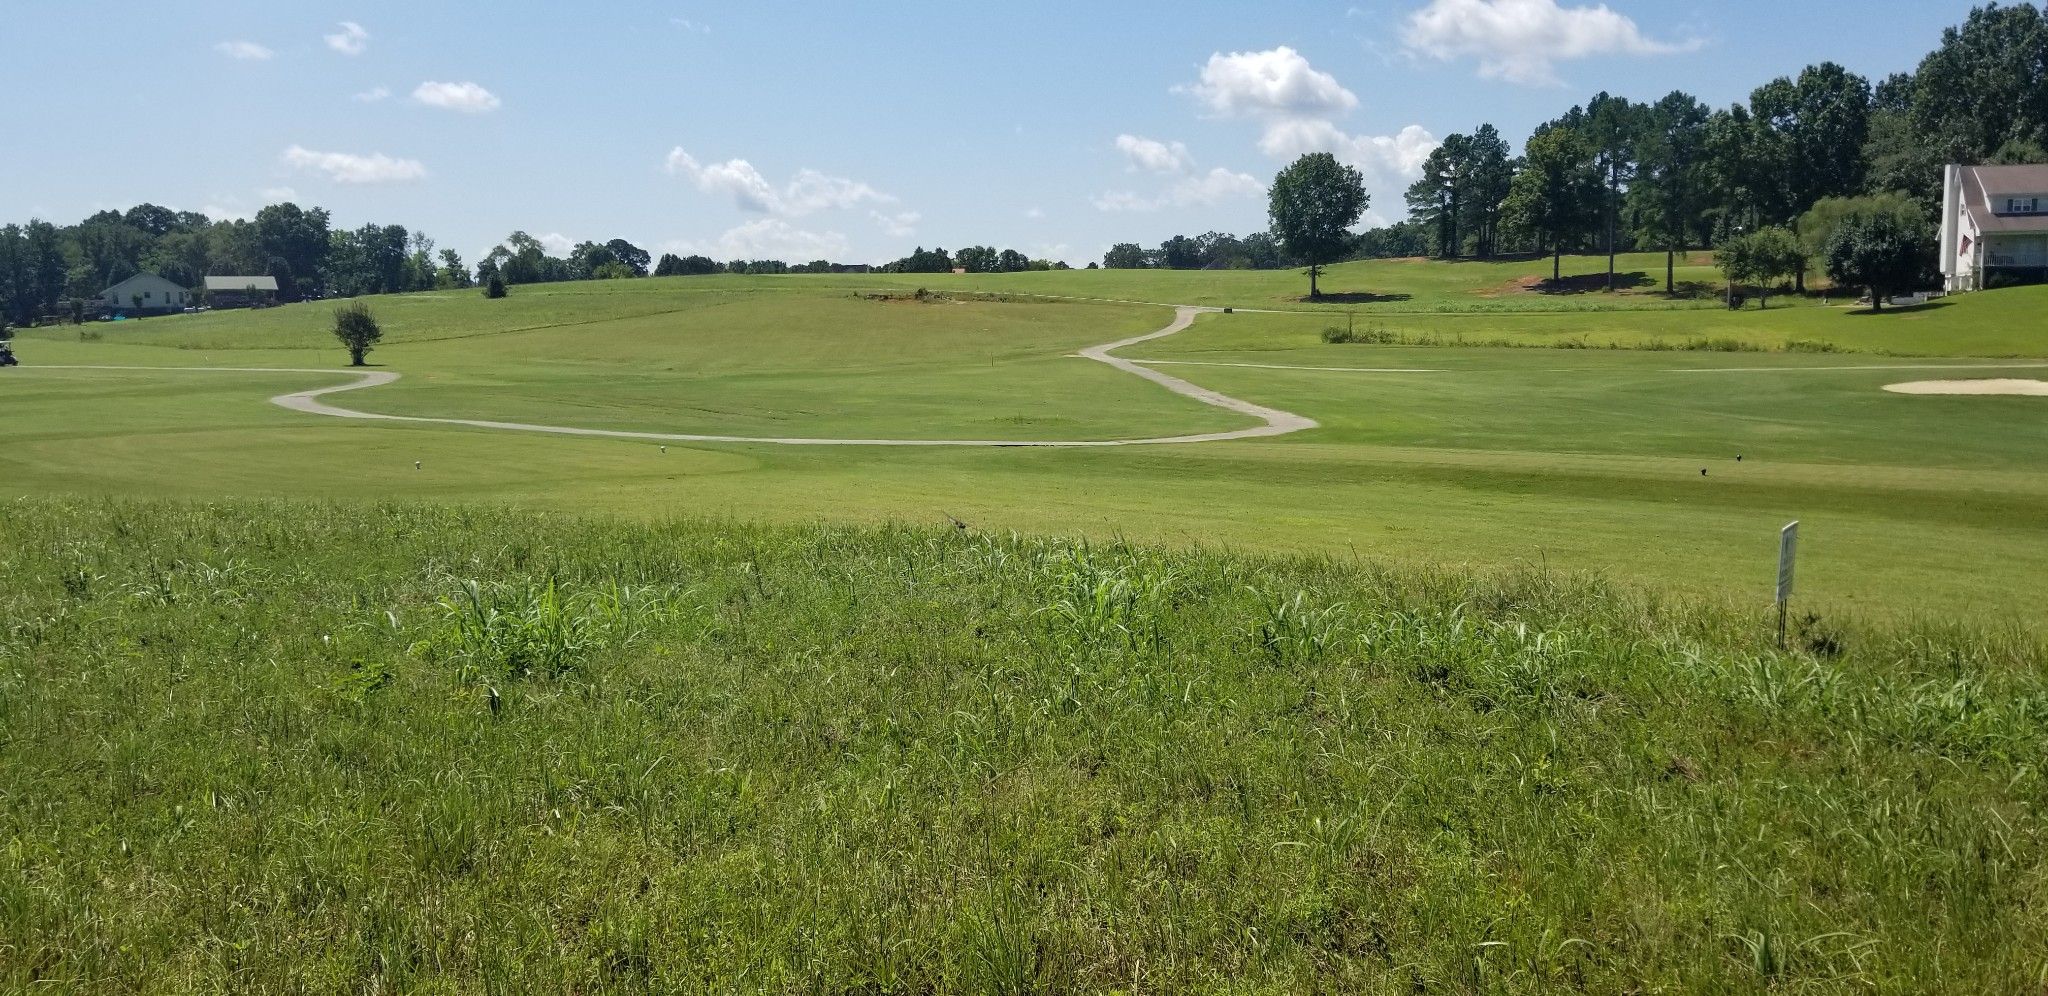 0 Golf Course Lane Property Photo - Decaturville, TN real estate listing